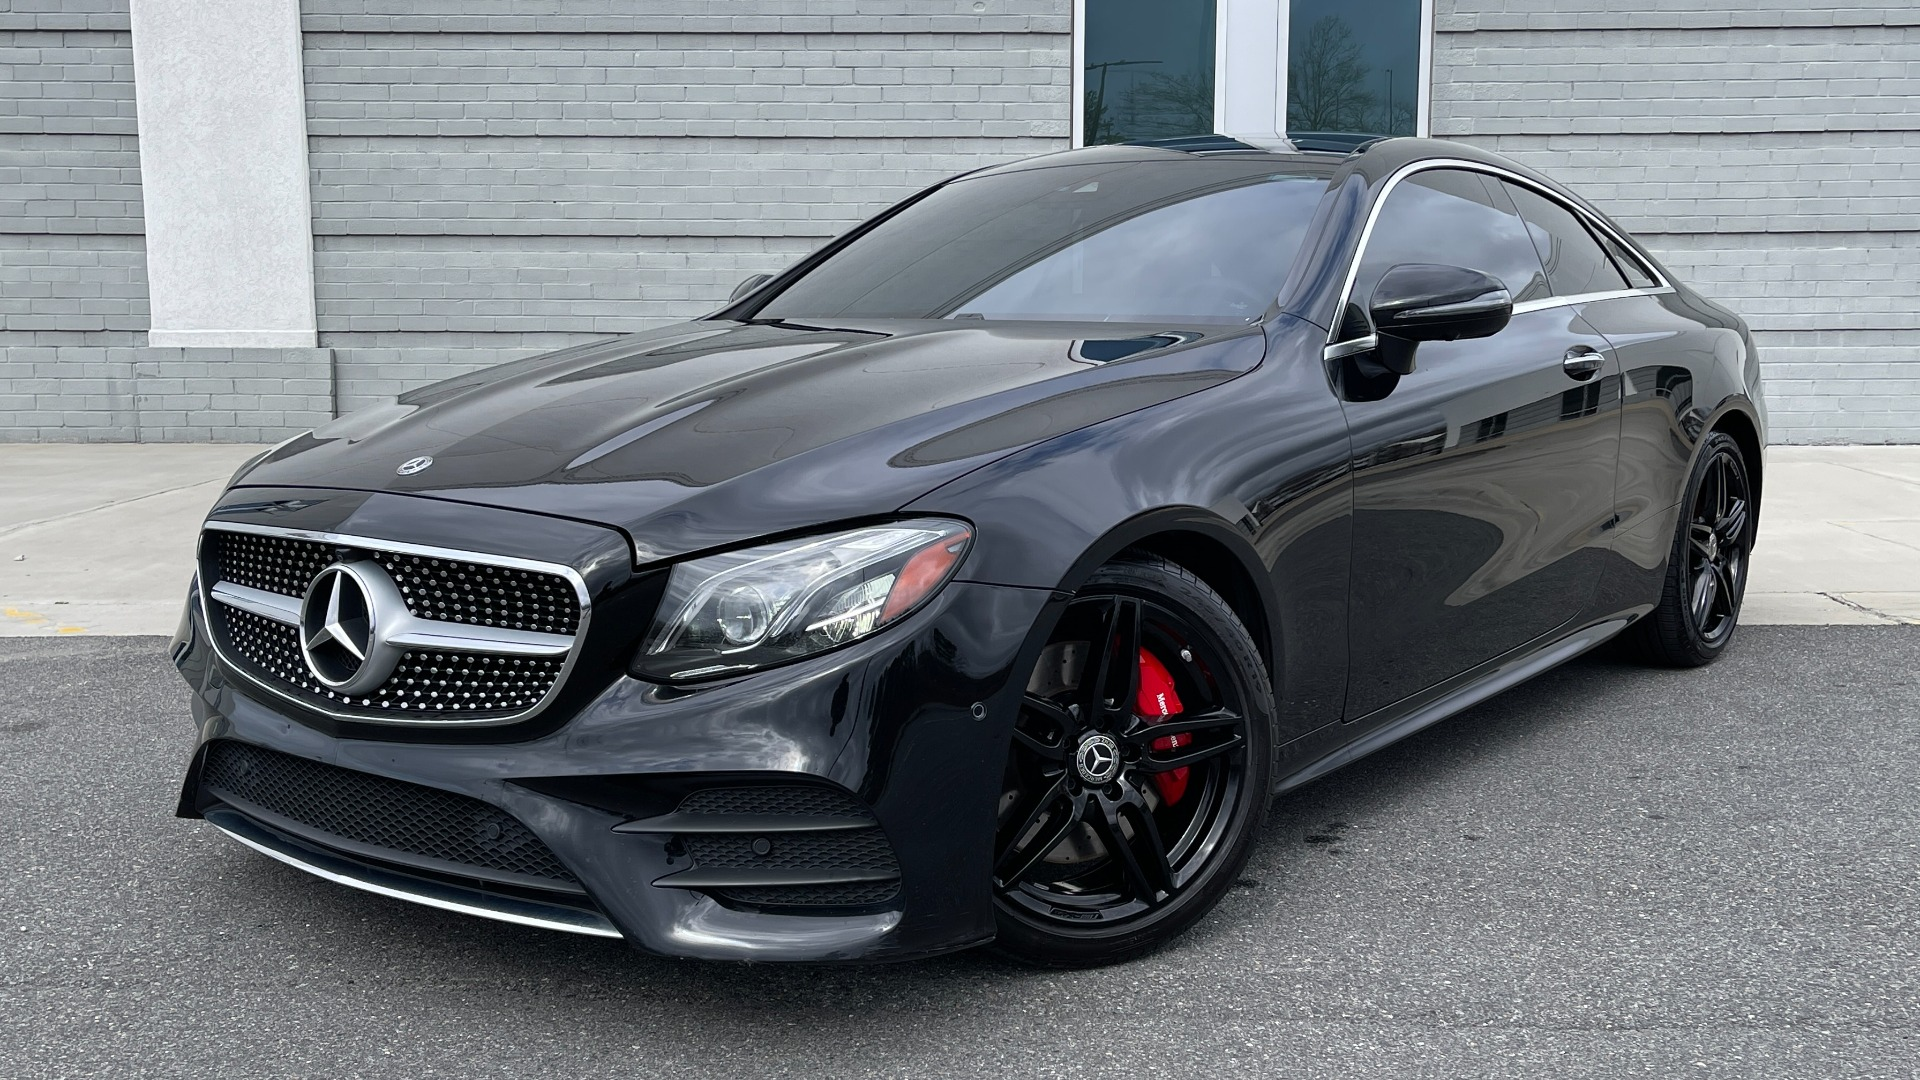 Used 2019 Mercedes-Benz E-CLASS E 450 PREMIUM / AMG LINE / PARK ASST / BSA / BURMESTER for sale $49,995 at Formula Imports in Charlotte NC 28227 1